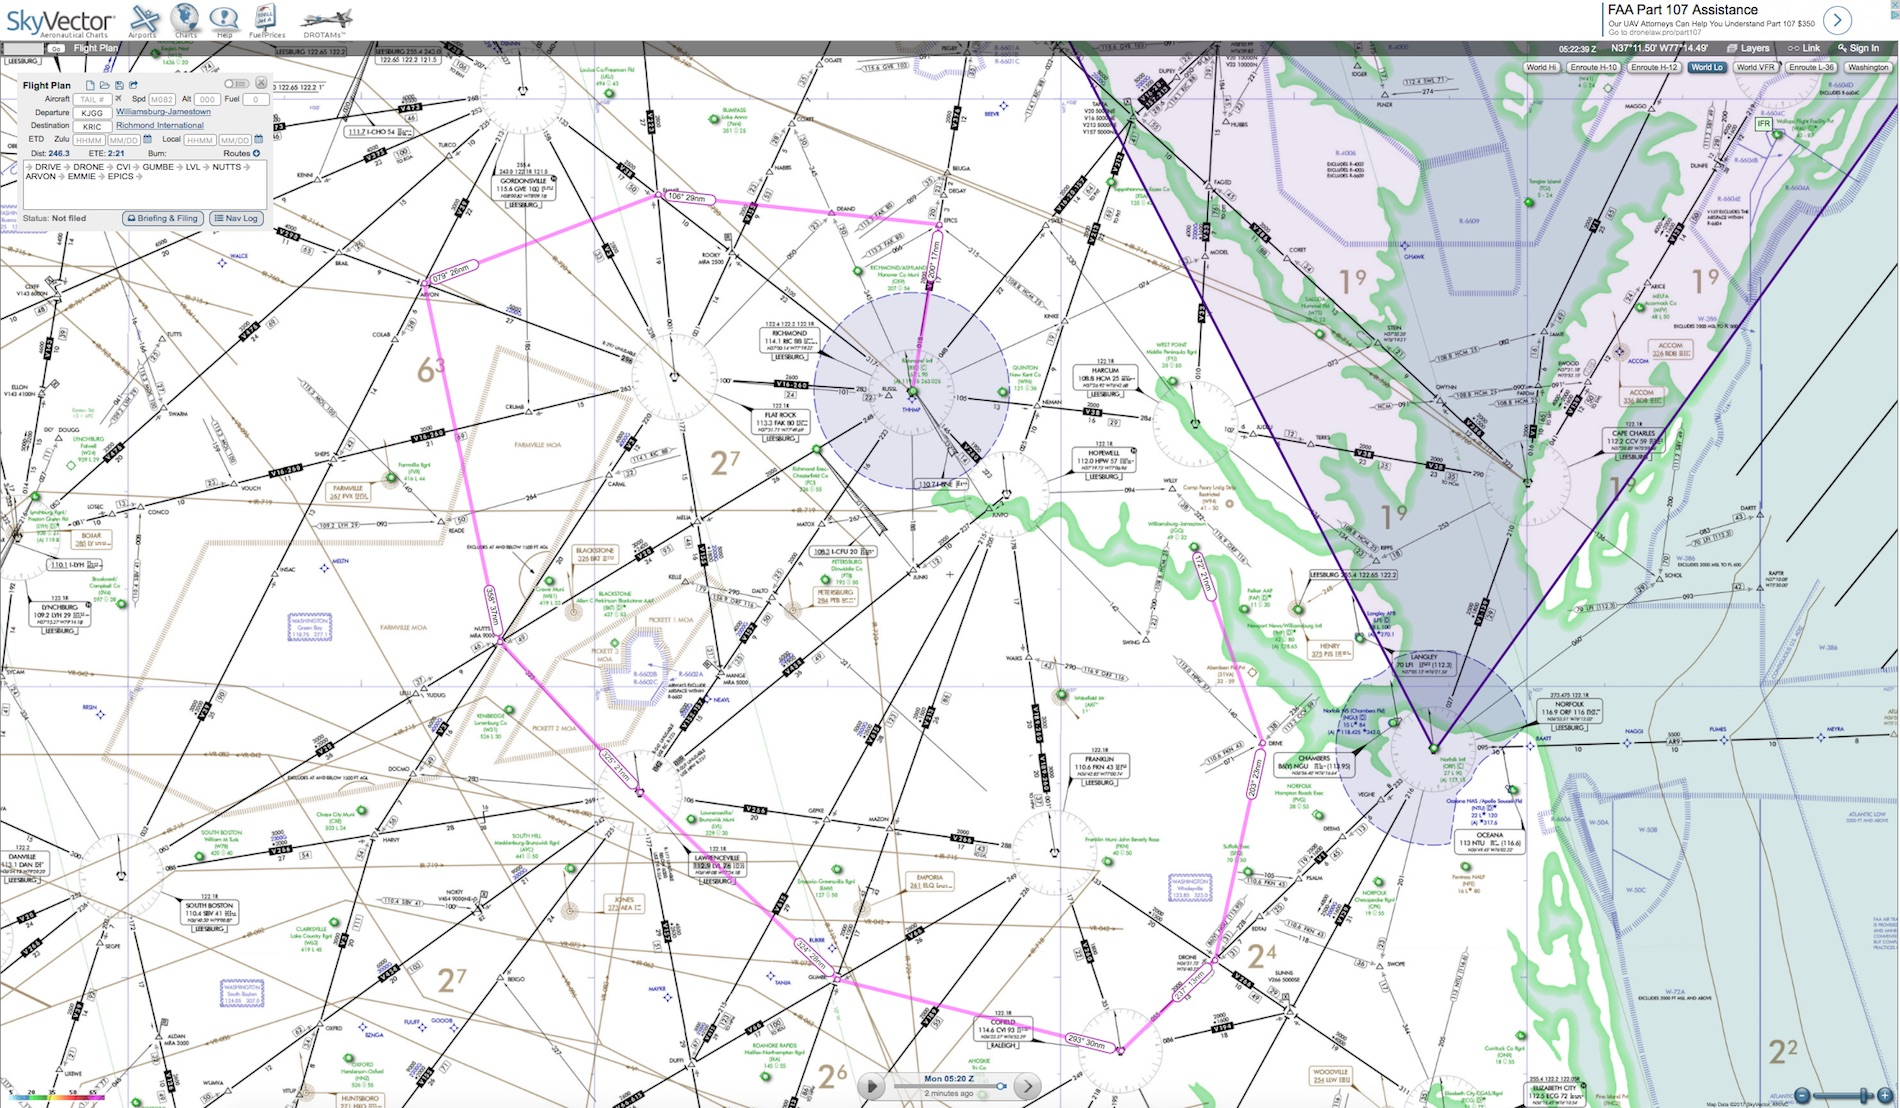 Skyvector flight vfr planning - Flight Plan Of The First Set Of Screenshots Made With Online Flight Planner The Second Flight Plan Handmade With The Help Of Skyvector As Well As An